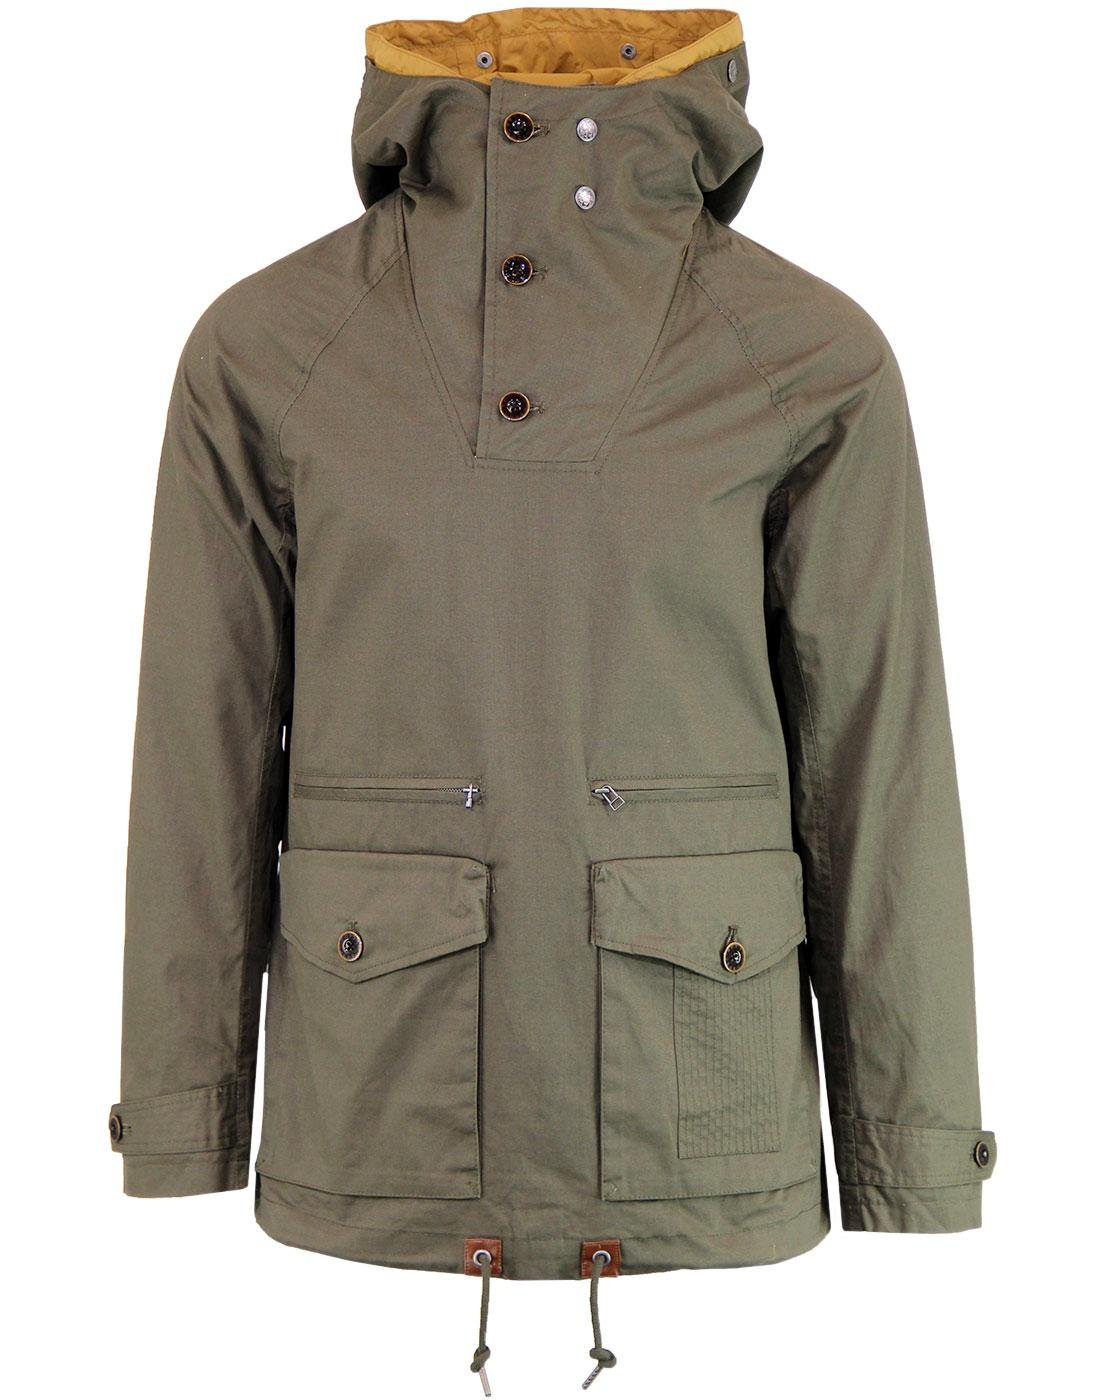 PRETTY GREEN Mens Retro Overhead Cagoule Jacket K